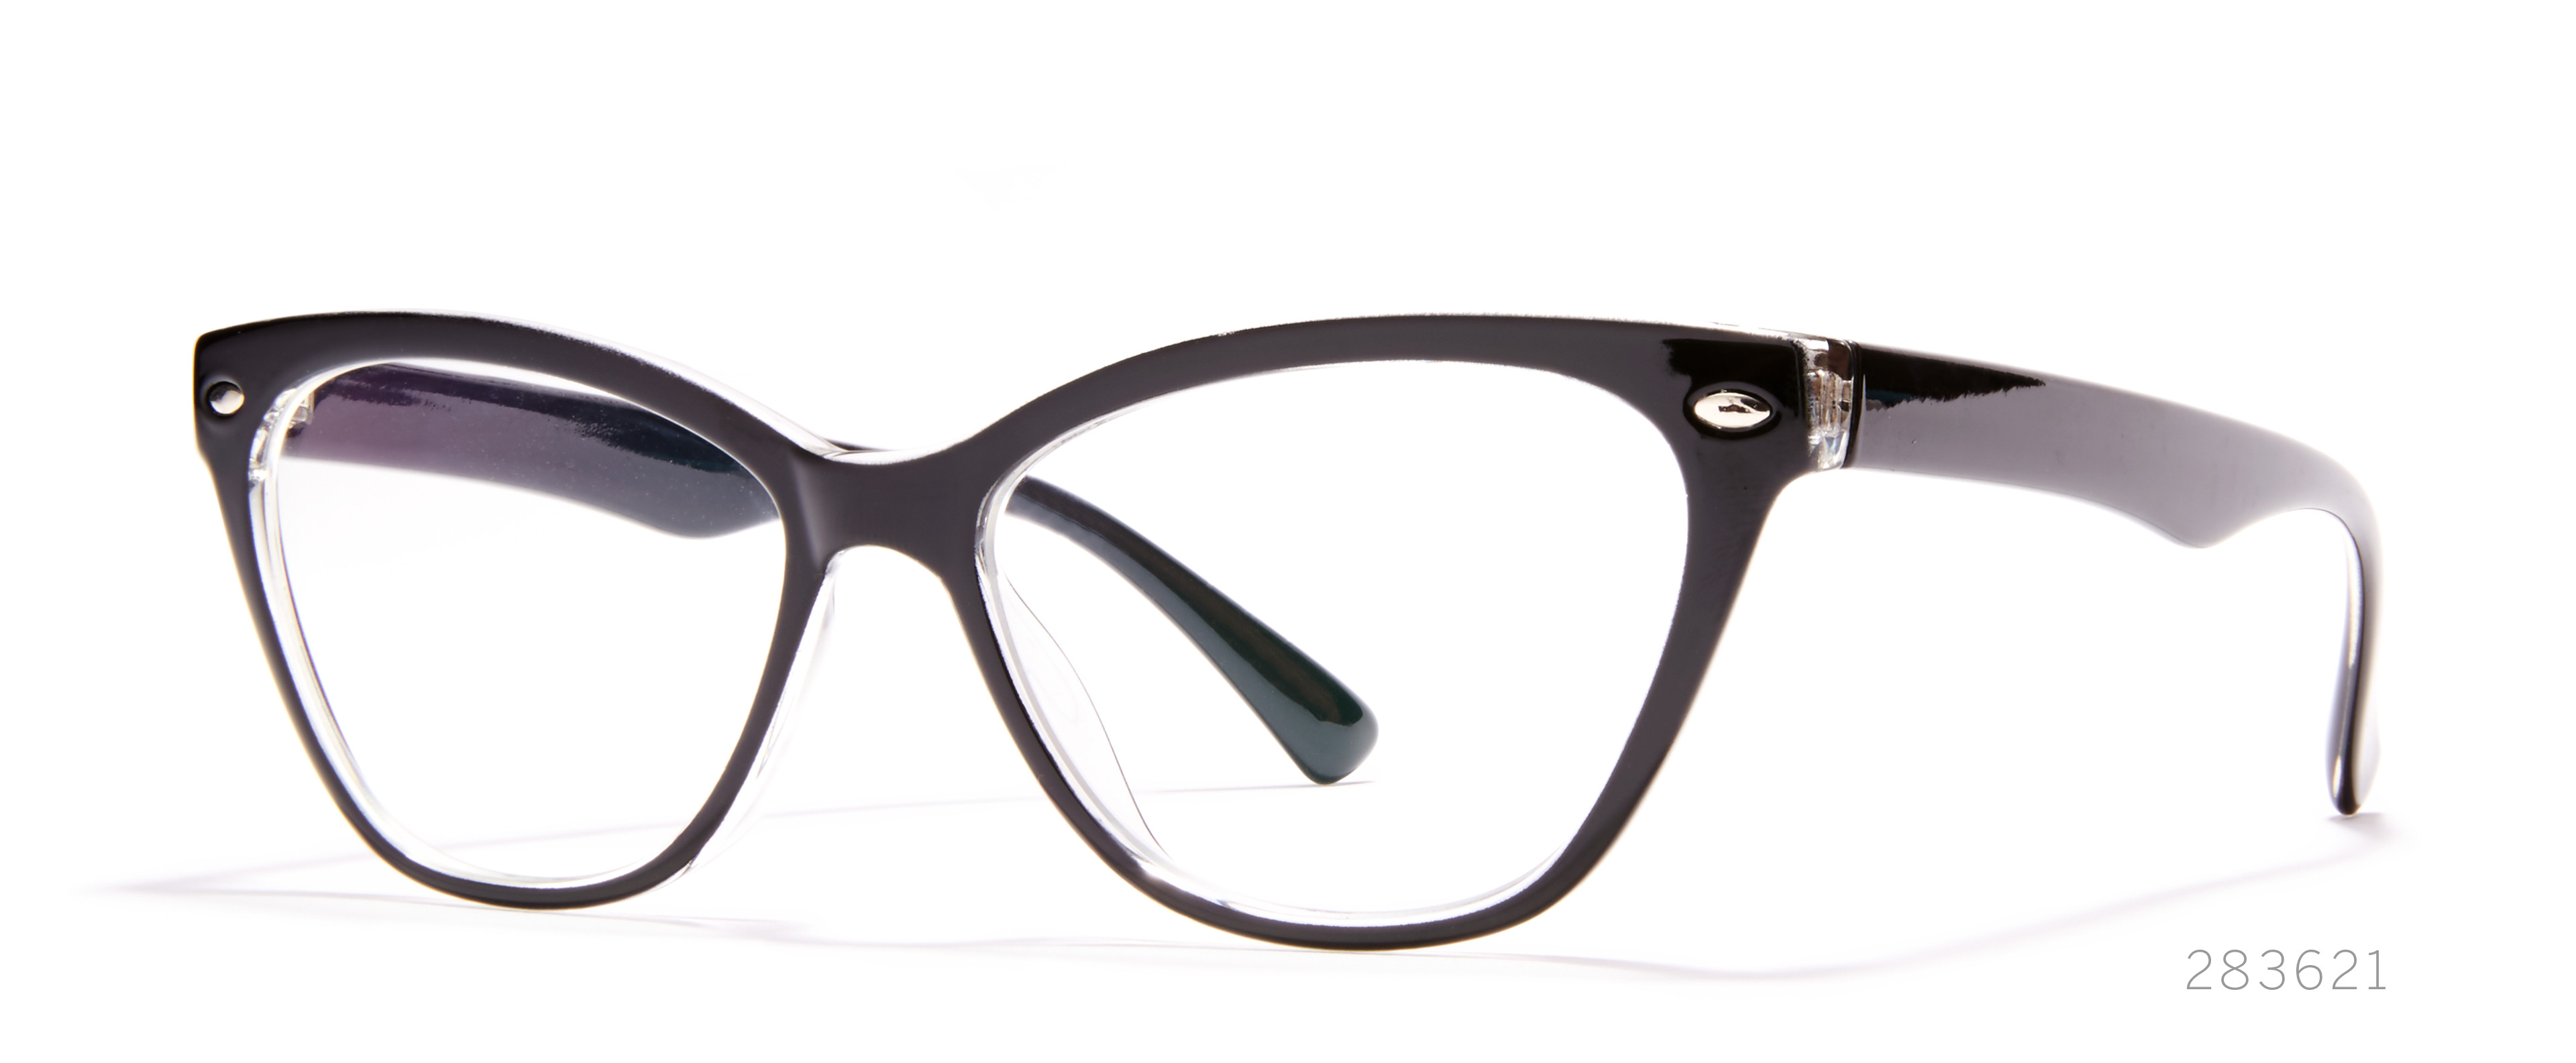 cateye statement glasses